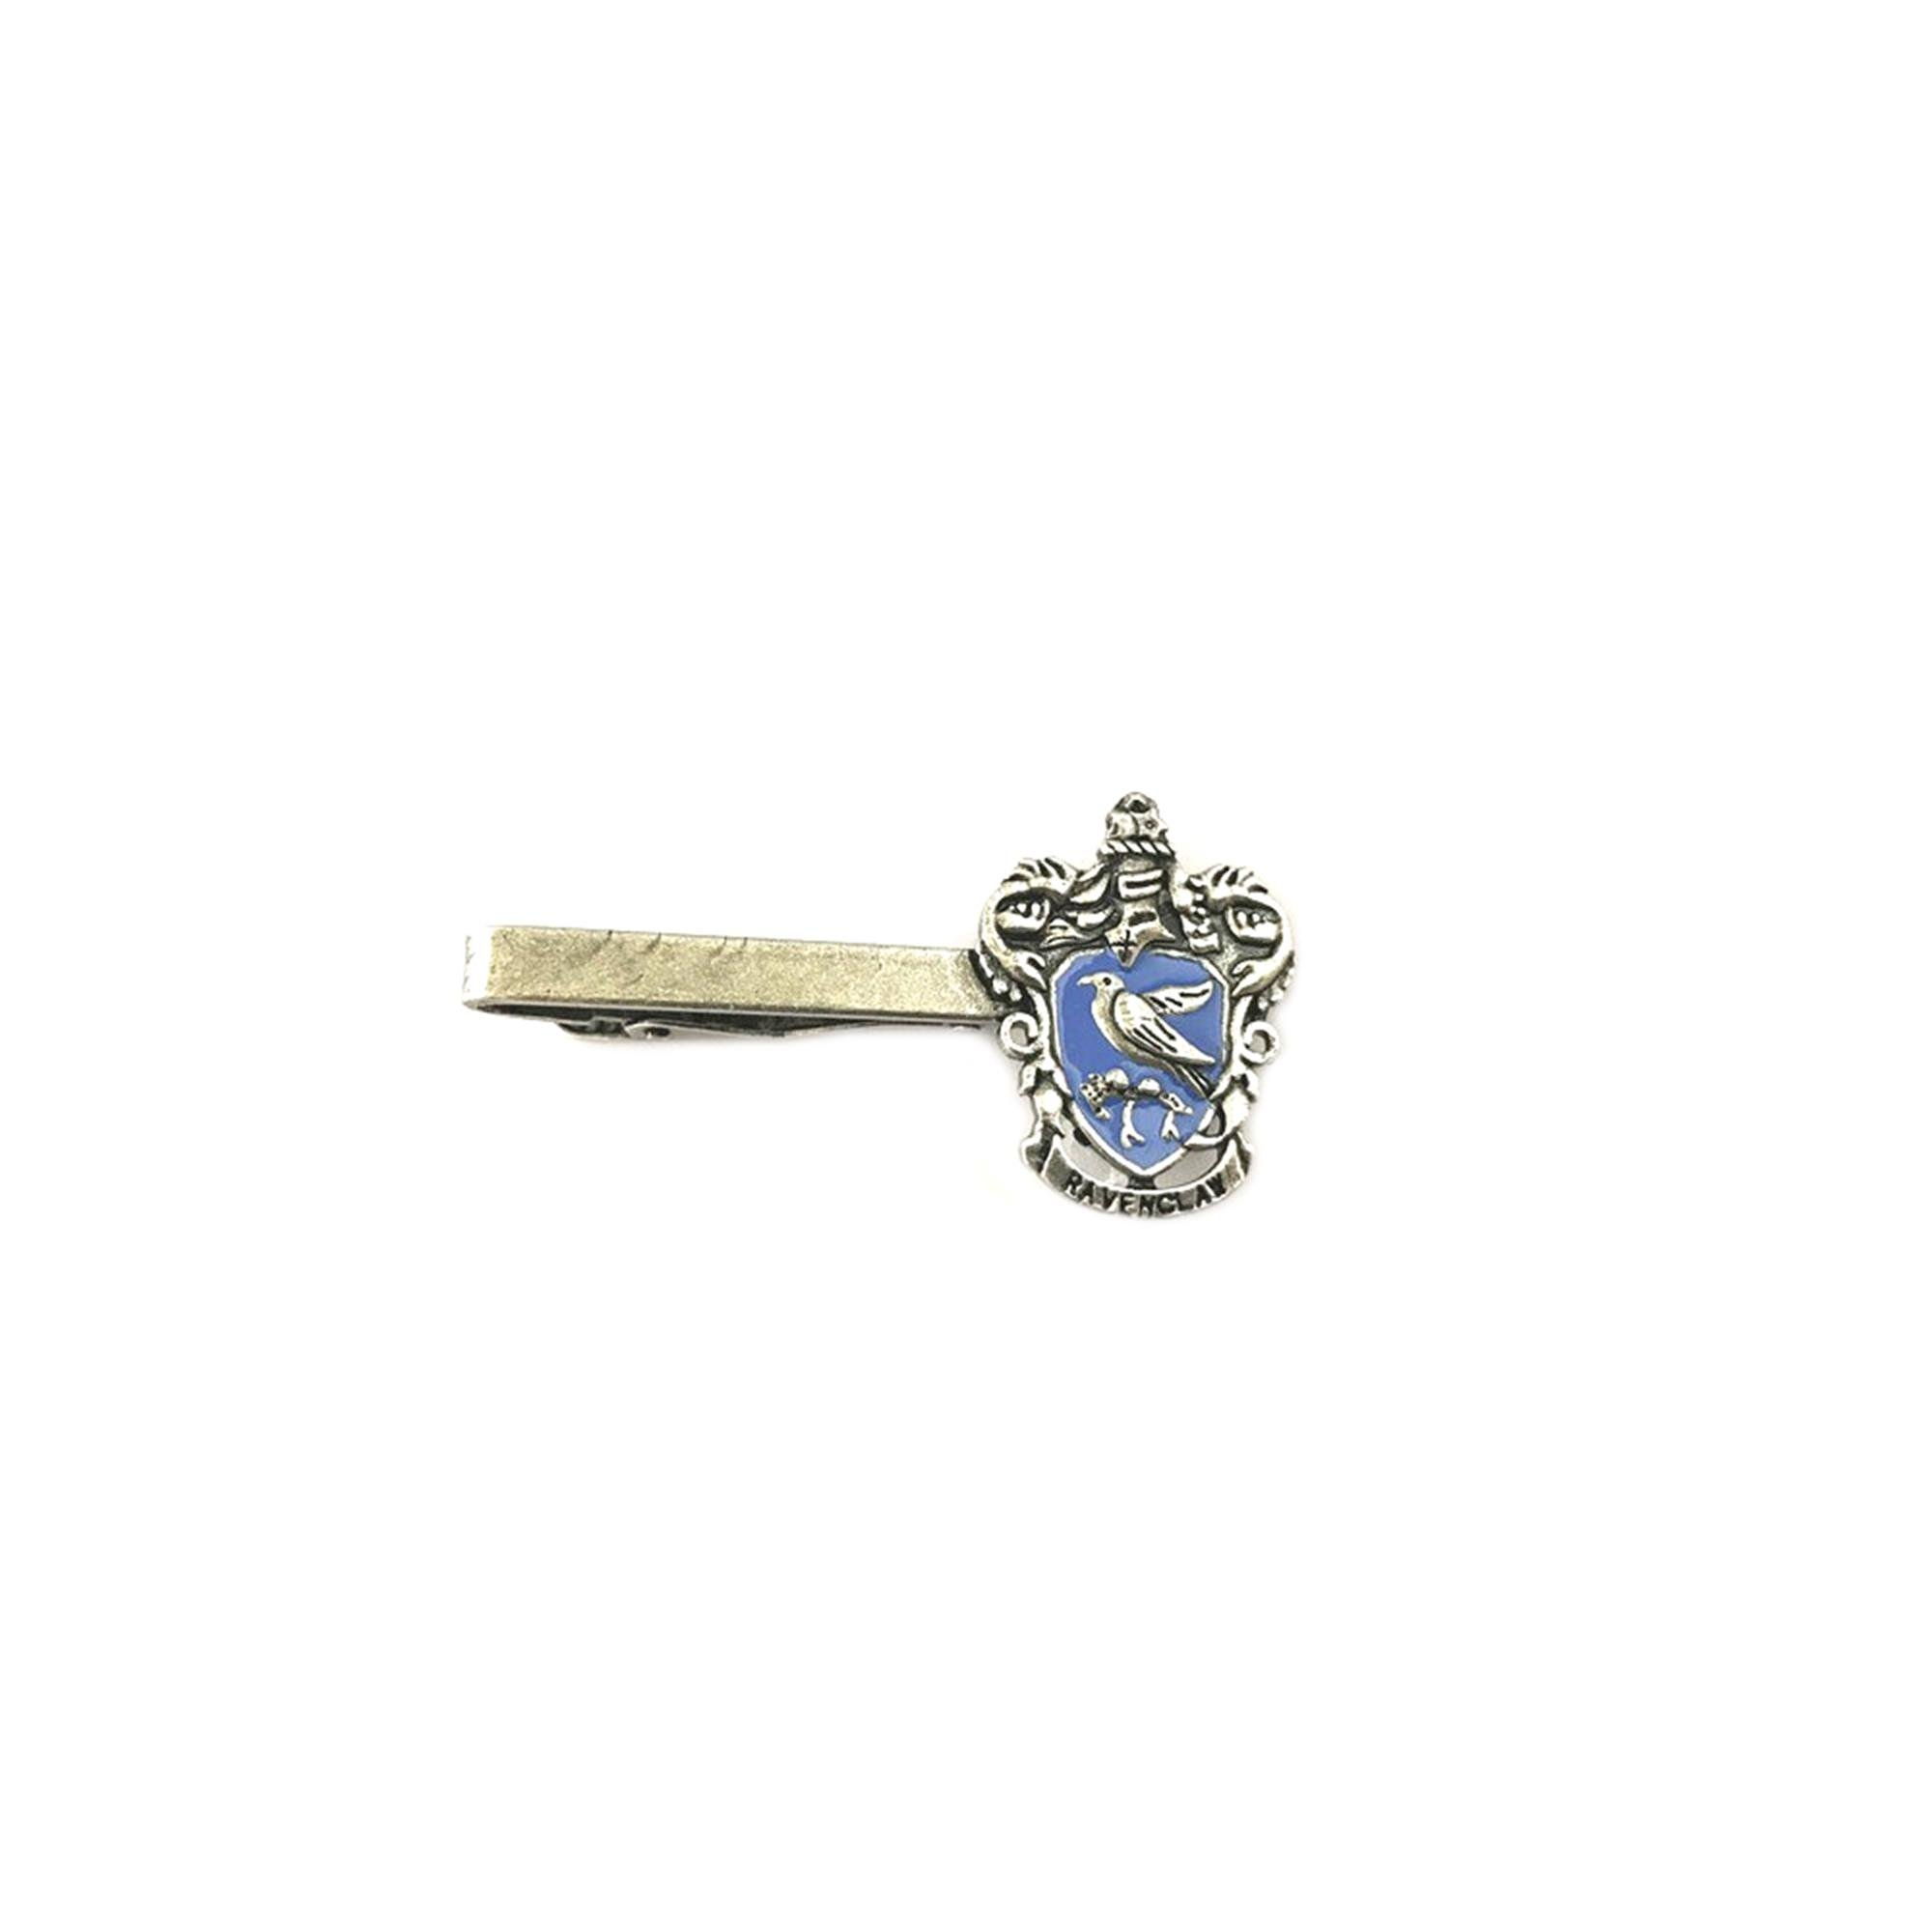 Harry Potter Ravenclaw Crest Silver Tone Tie Bar w/Gift Box By Superheroes